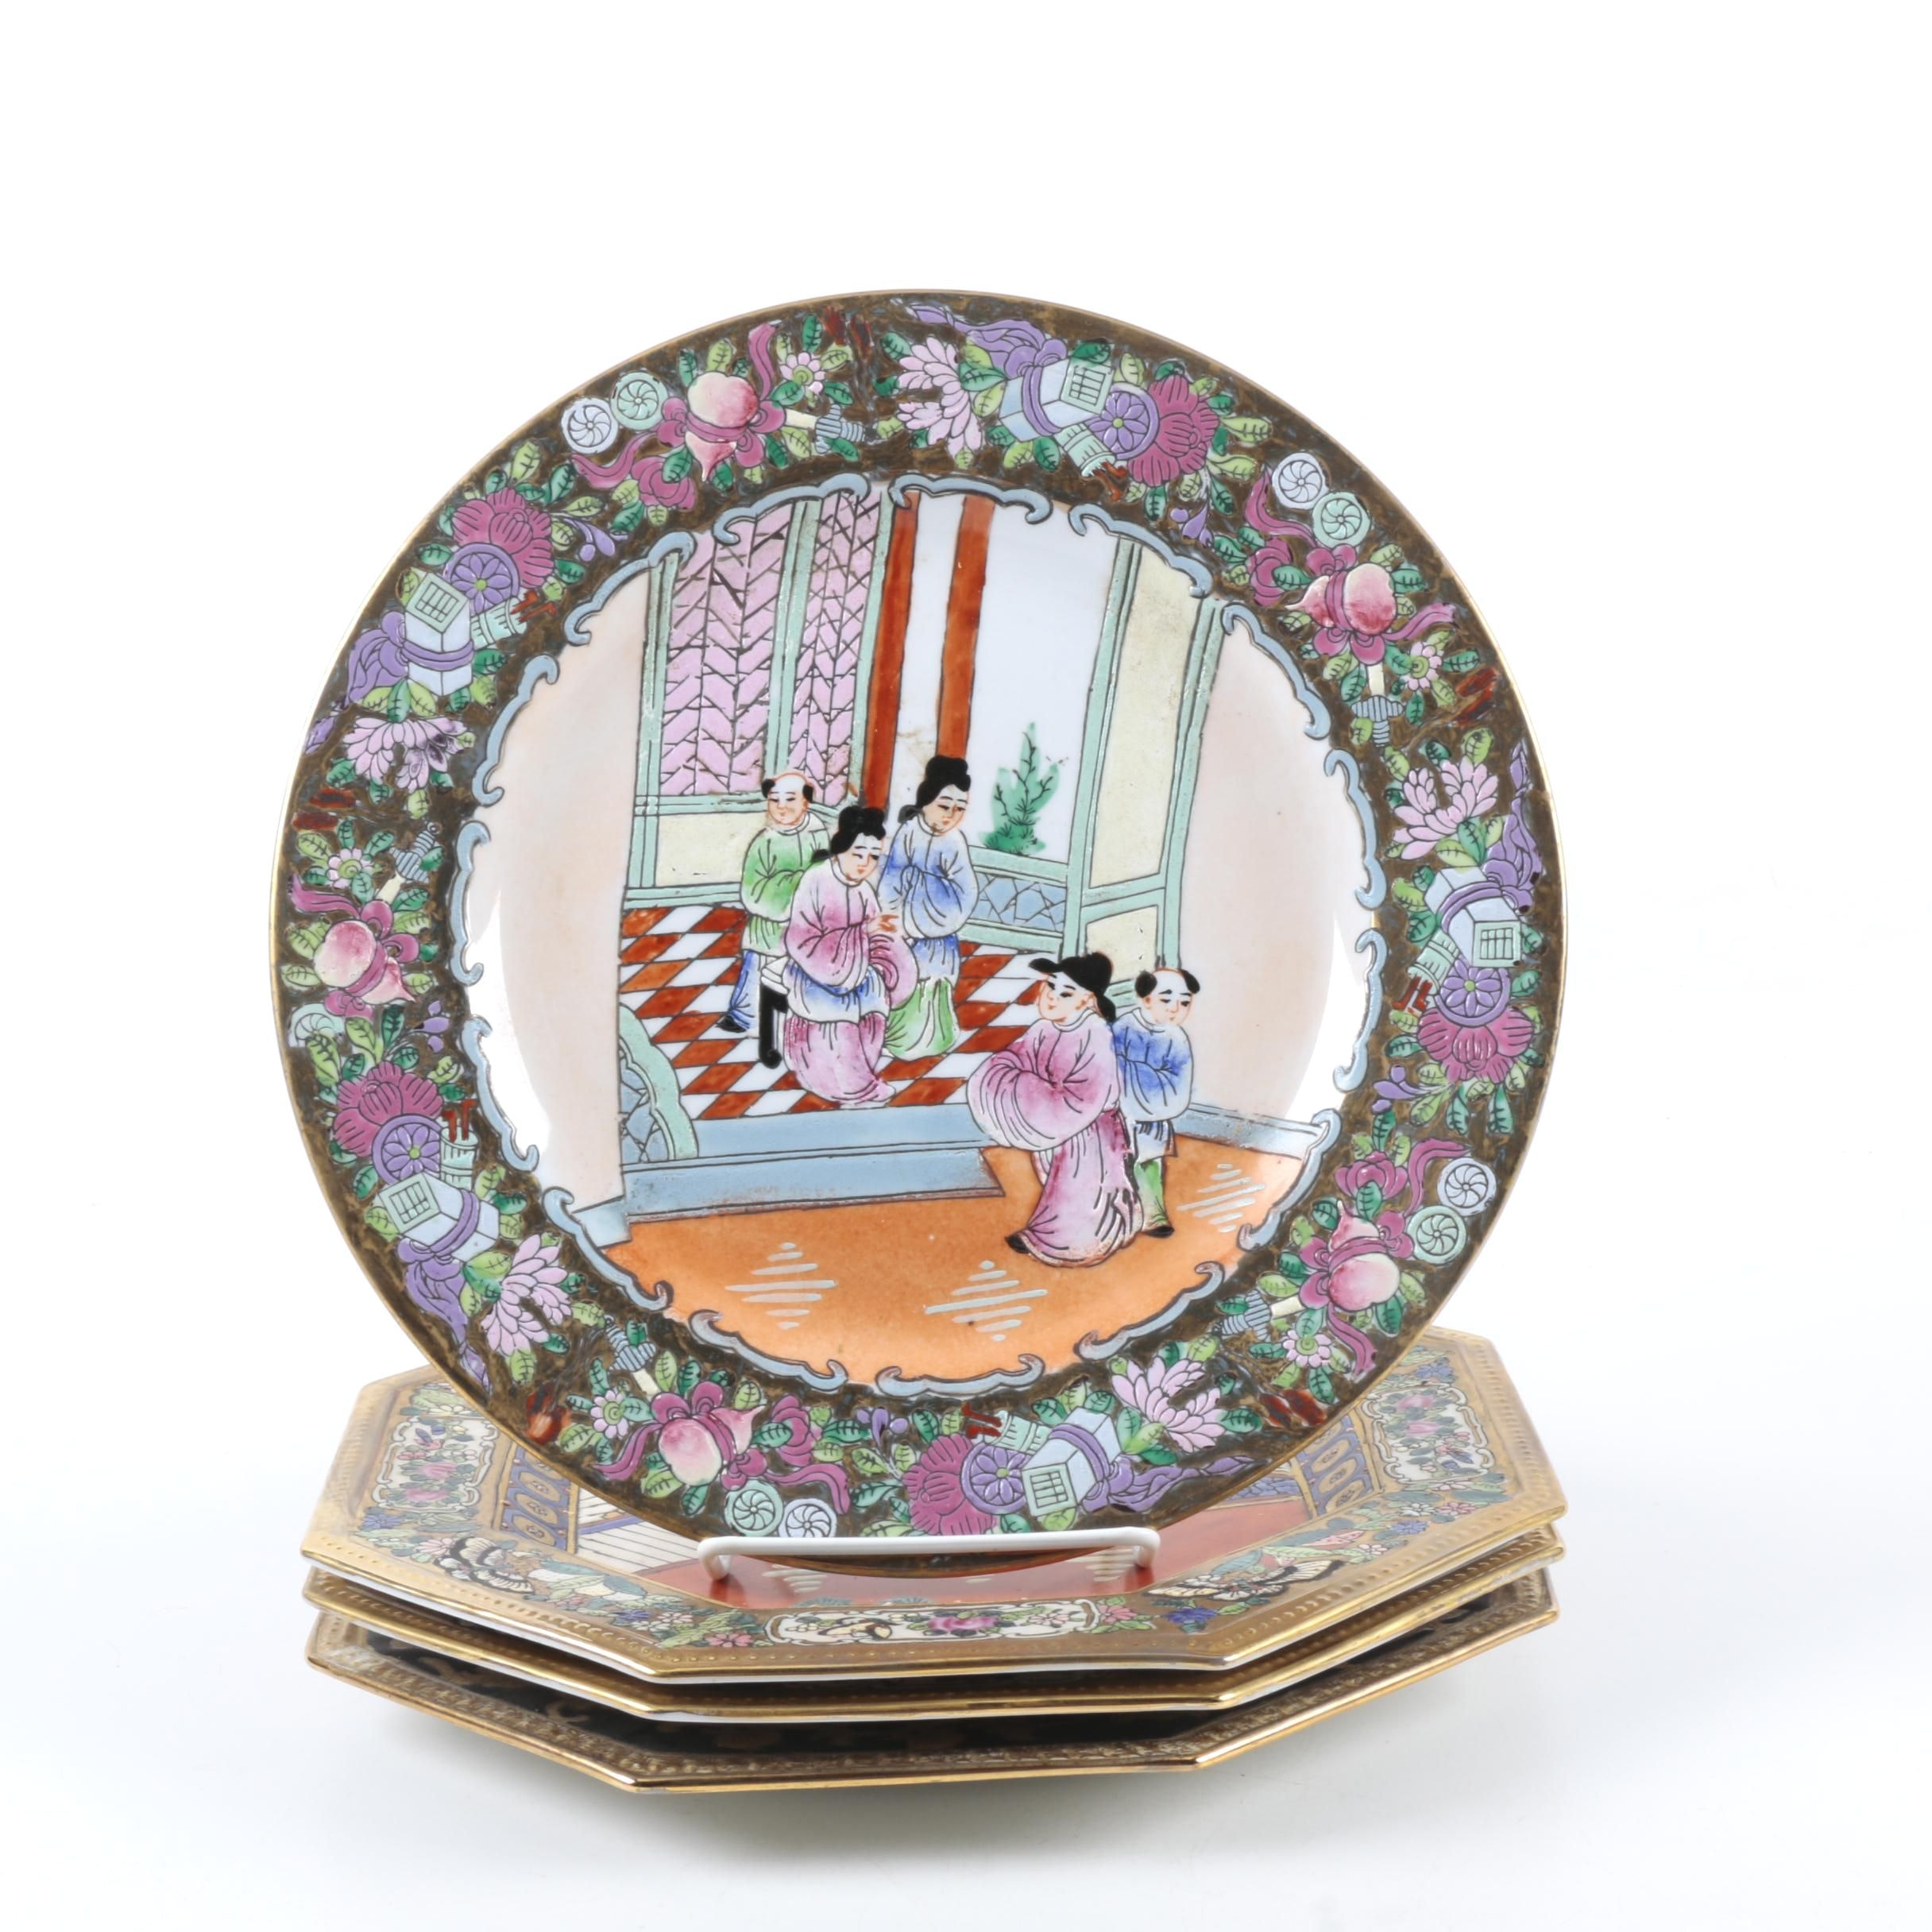 Hand-Painted Chinese Decorative Plates ...  sc 1 st  EBTH.com & Hand-Painted Chinese Decorative Plates : EBTH